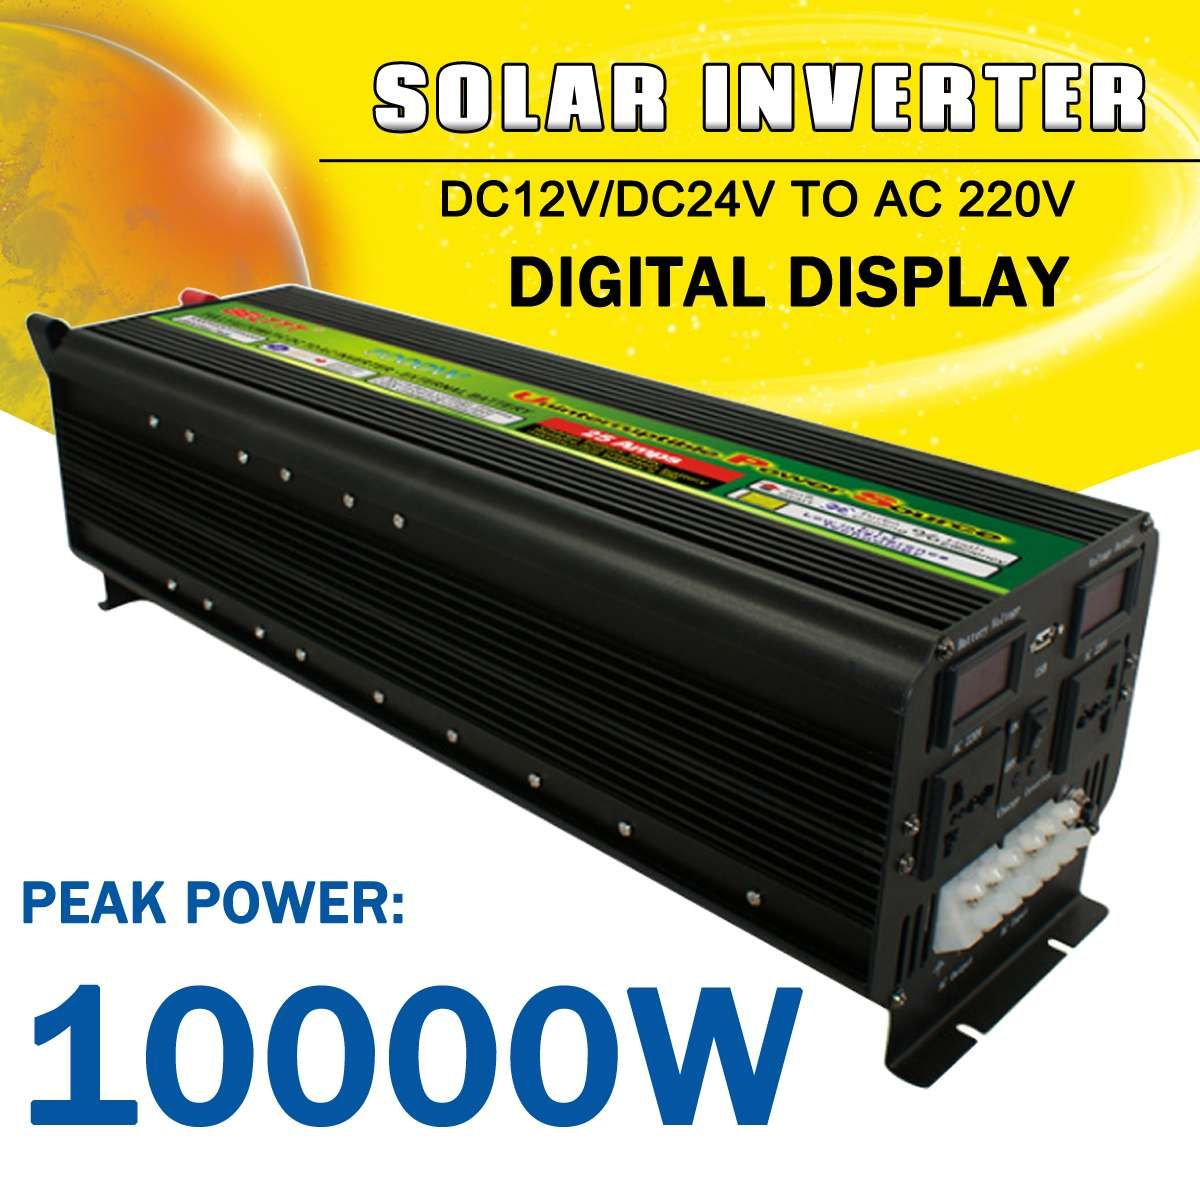 Solar Power Inverter 10000 W Max DC 12 V/24 V zu AC 220 V LCD Display Modifizierte Sinus welle Konverter Auto Adapter Ladung für Home Auto